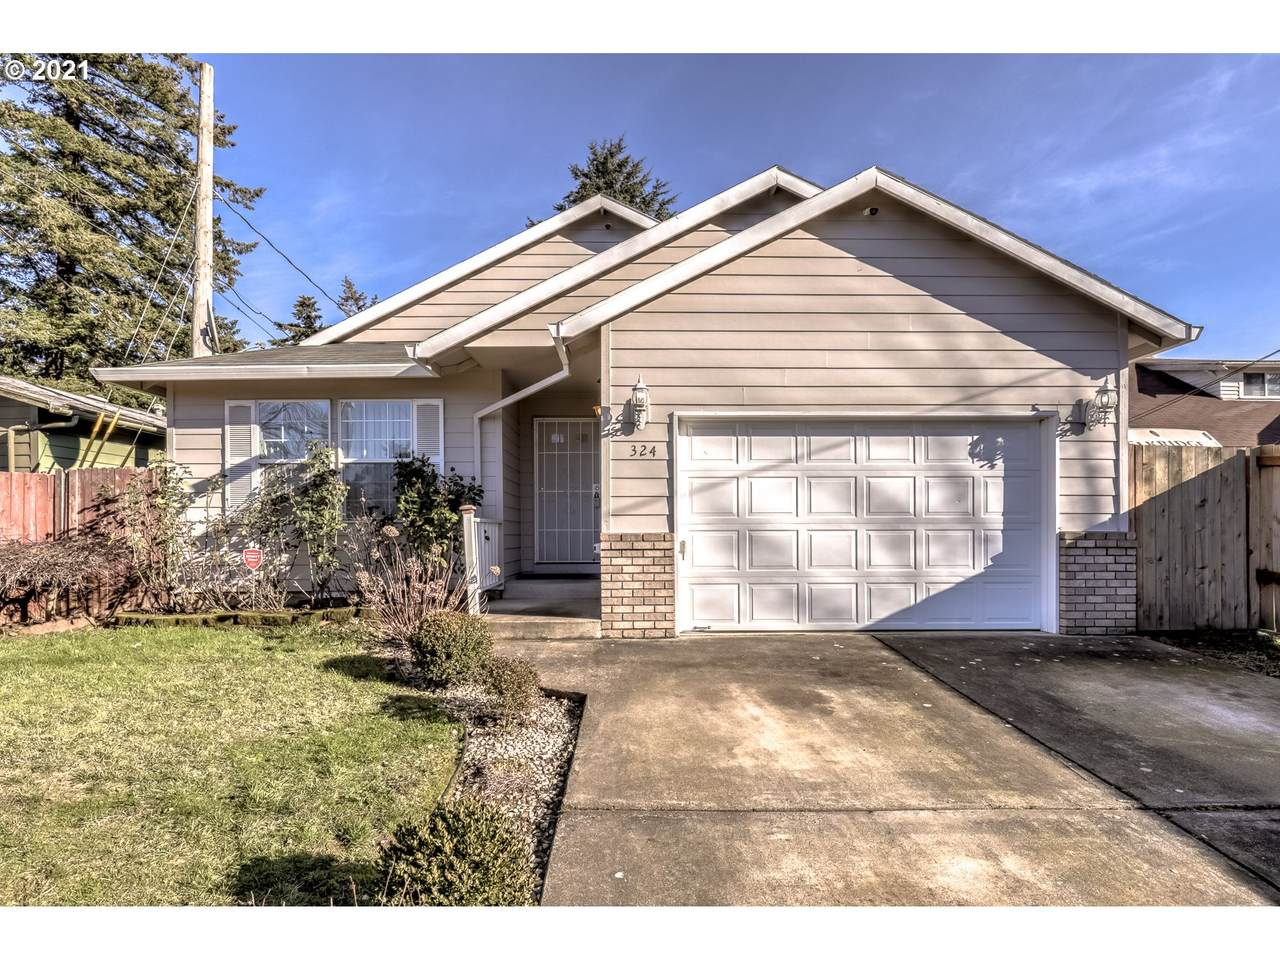 324 139TH Ave - Photo 1